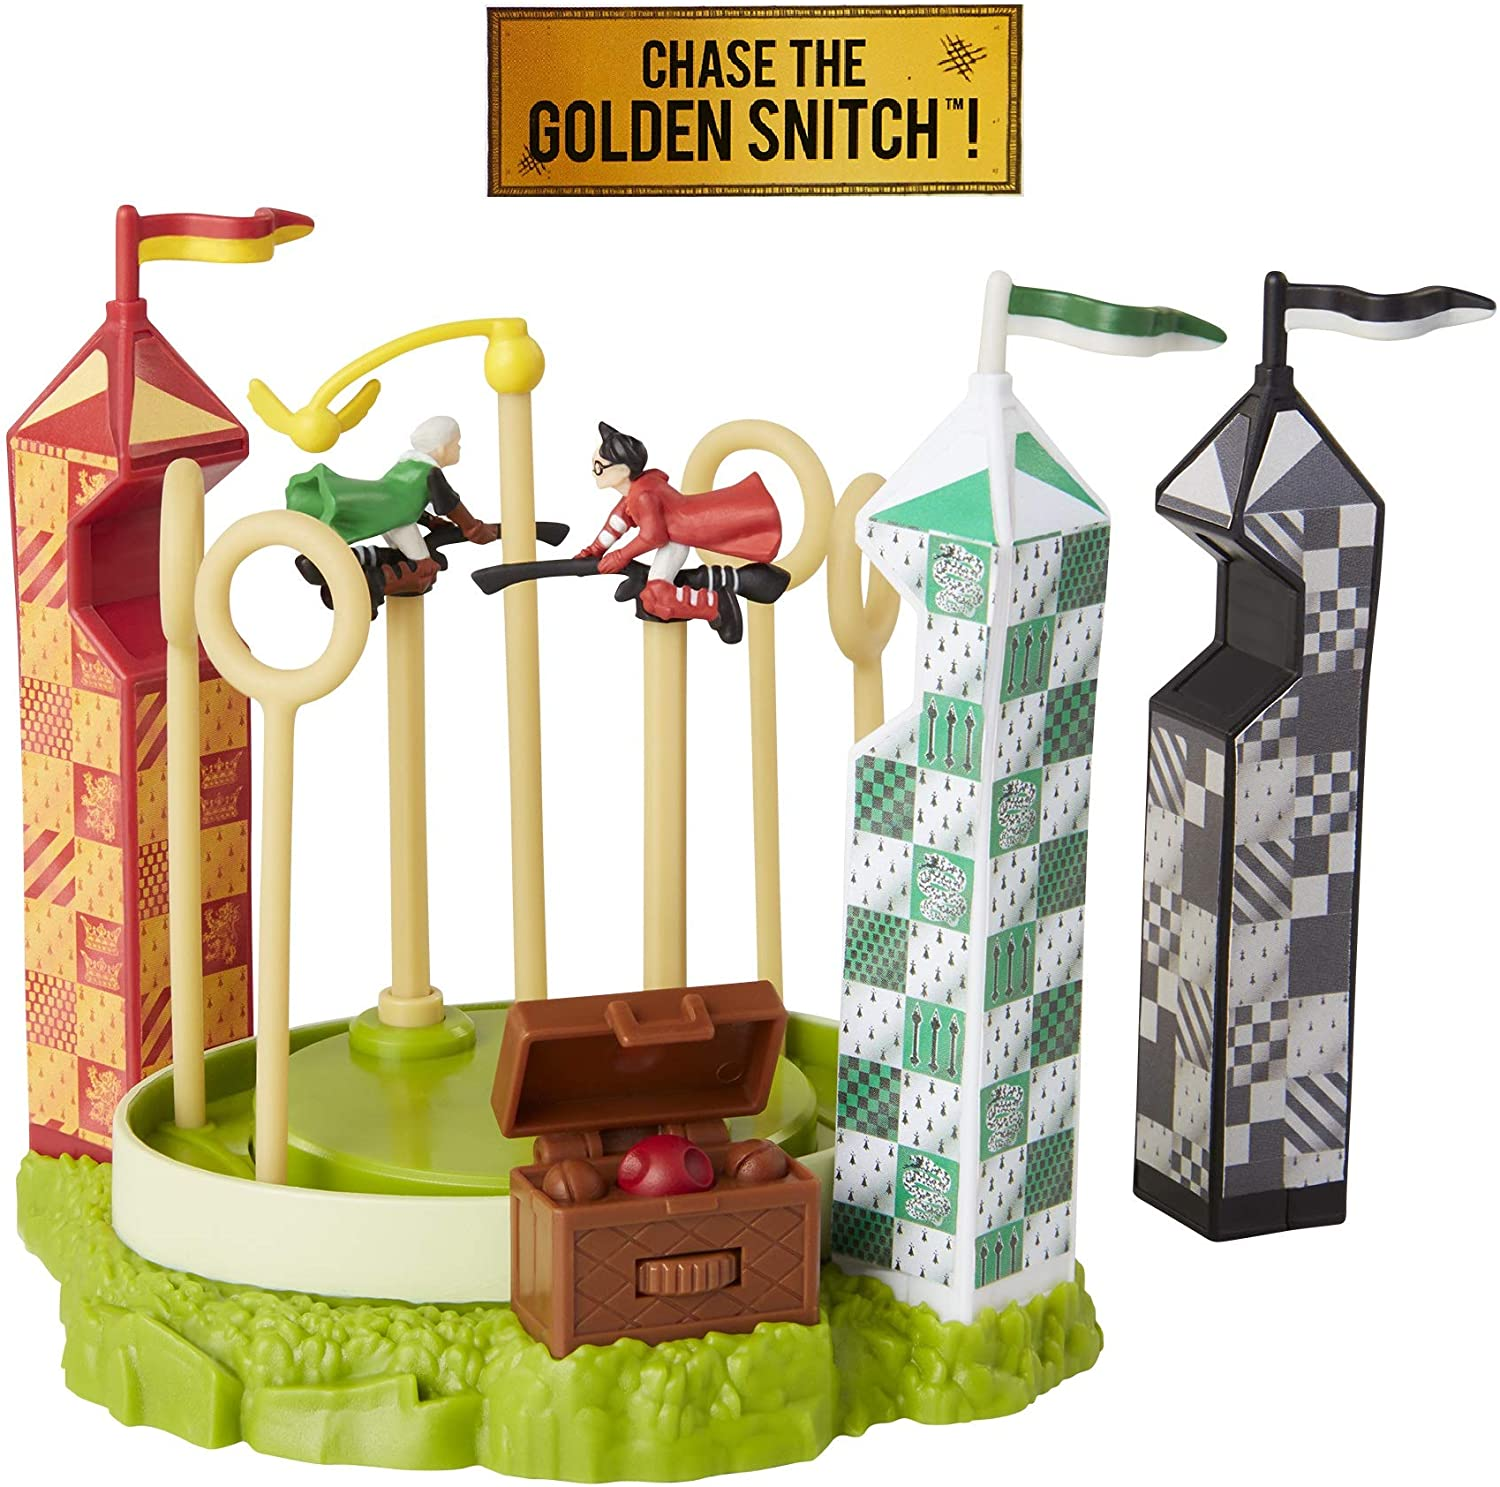 HARRY POTTER Quidditch Pitch Arena Mini Playset, Featuring HP and Draco Malfoy! Chase The Golden Snitch!